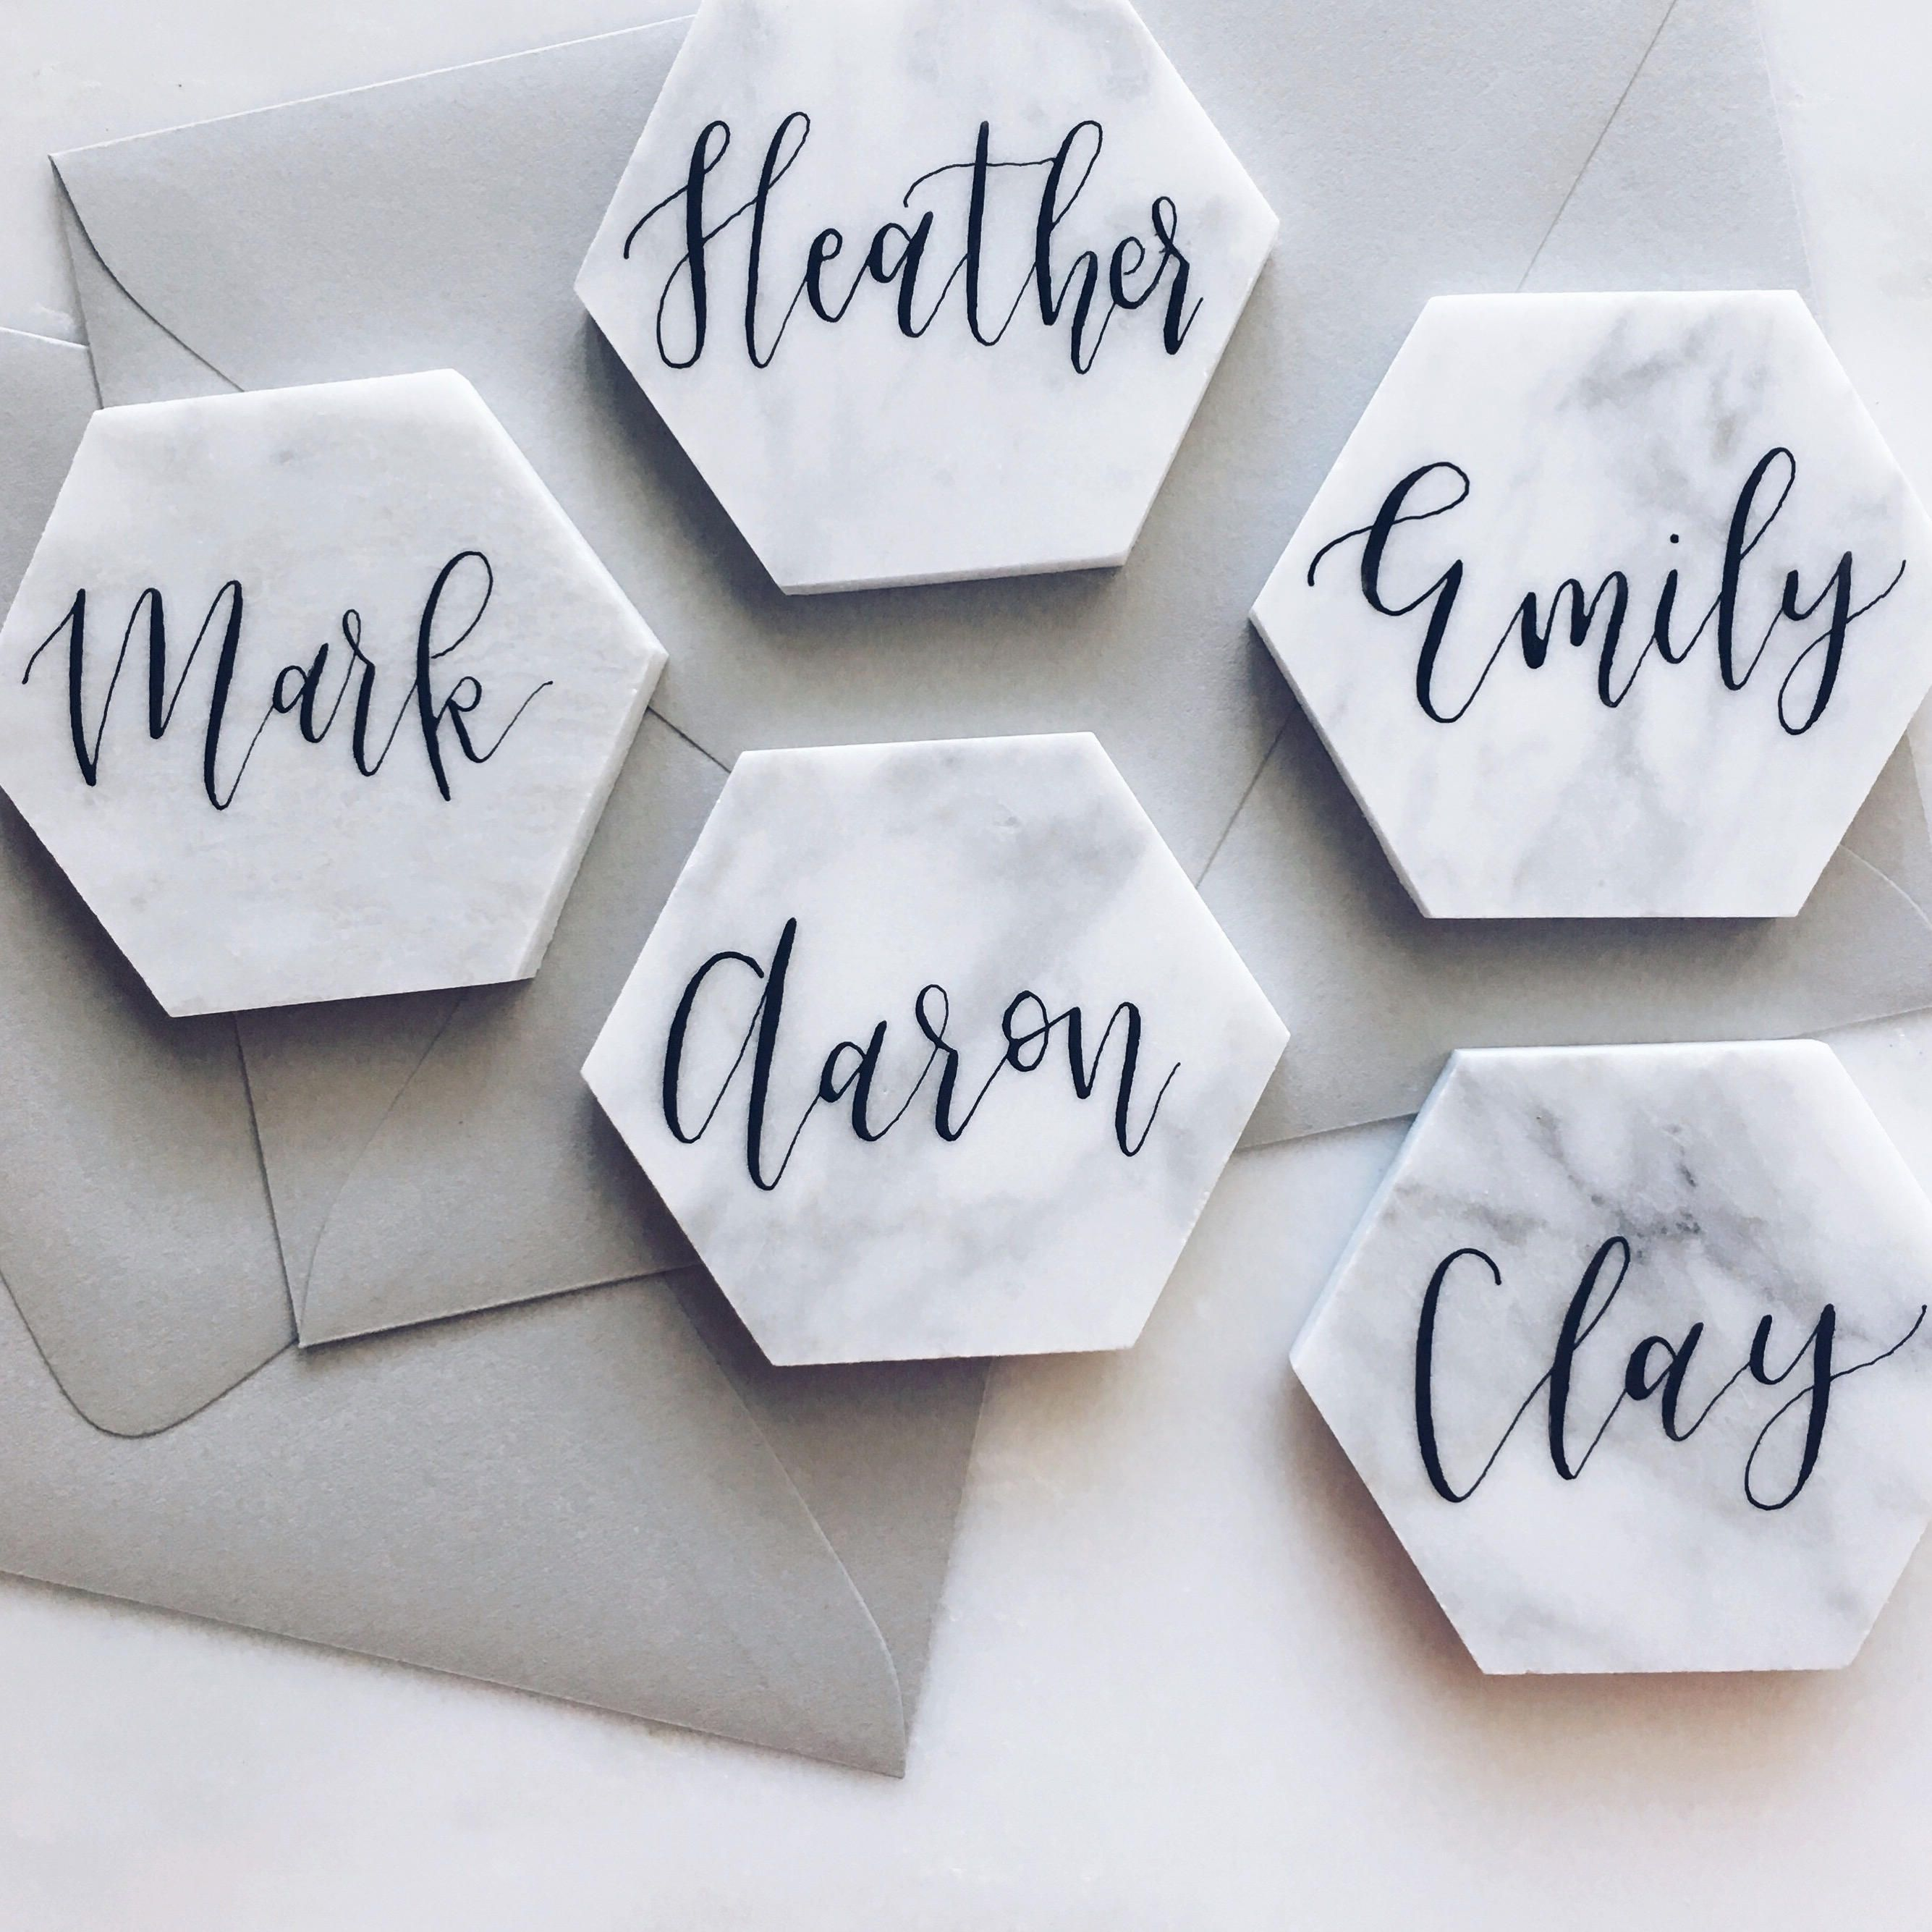 These Marble Tile Place Cards Are Surprisingly Chic | Place cards ...